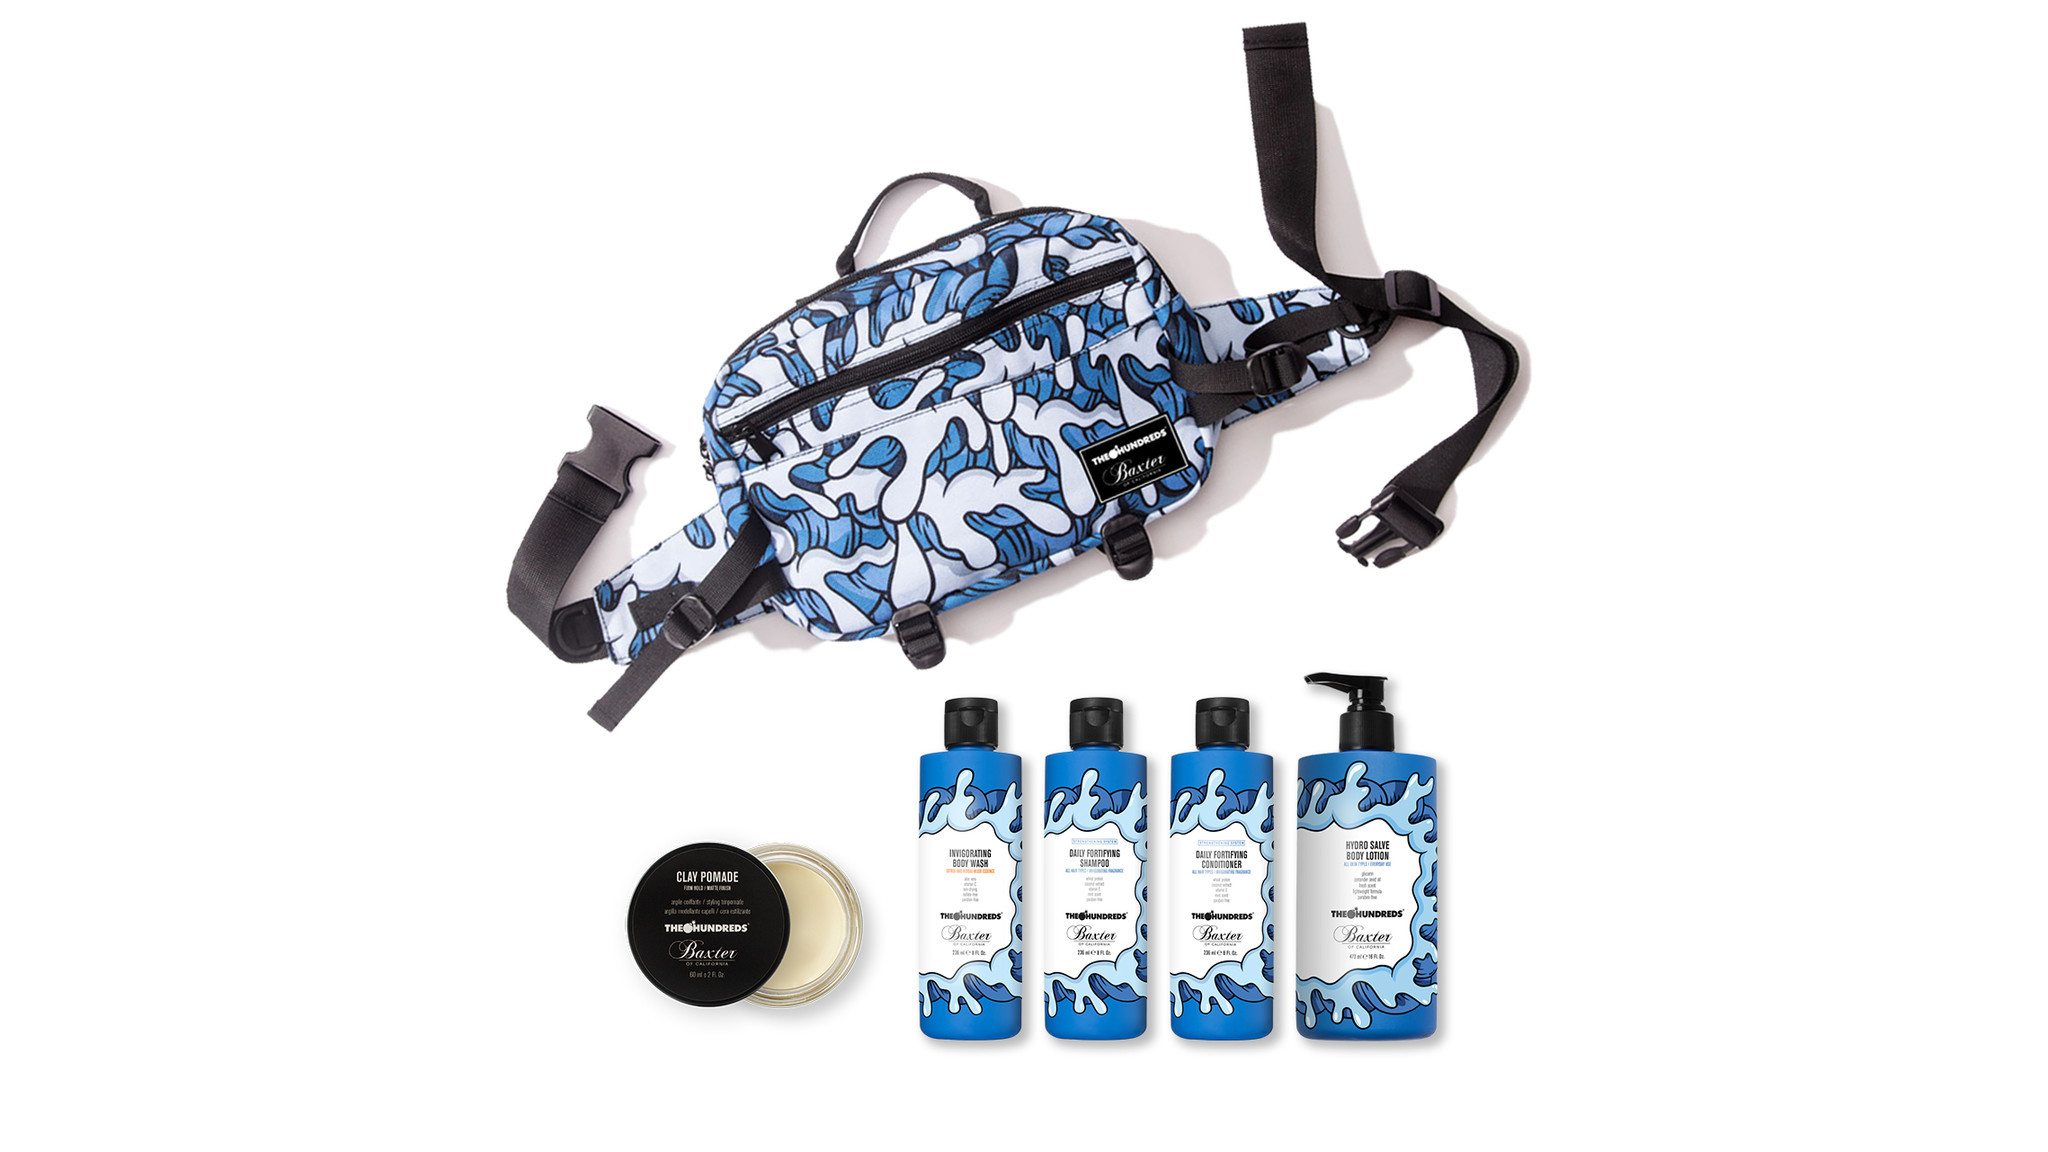 The Hundreds X Baxter of California limited-edition Waves grooming set with waist pack featuring art